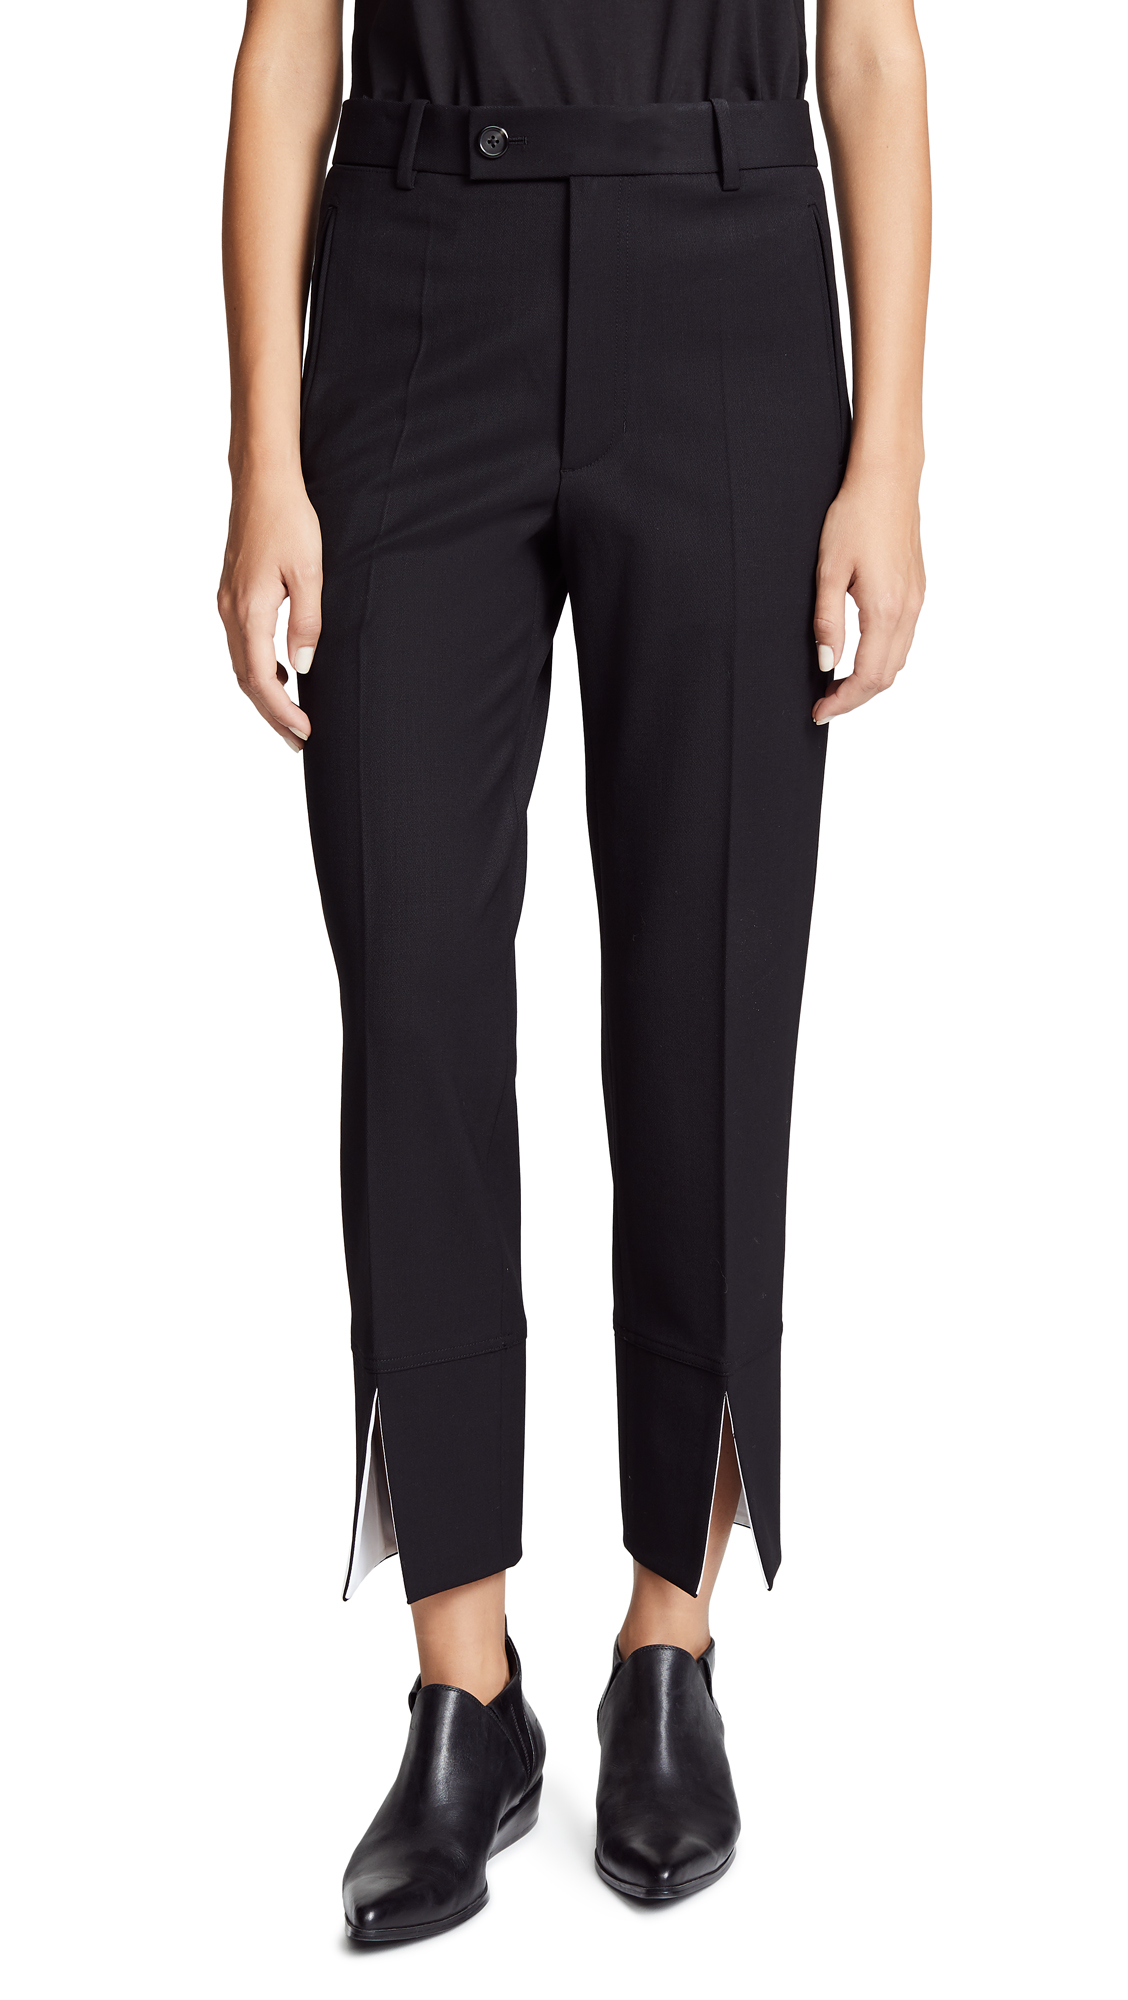 Helmut Lang Front Slit Suit Pants - Black